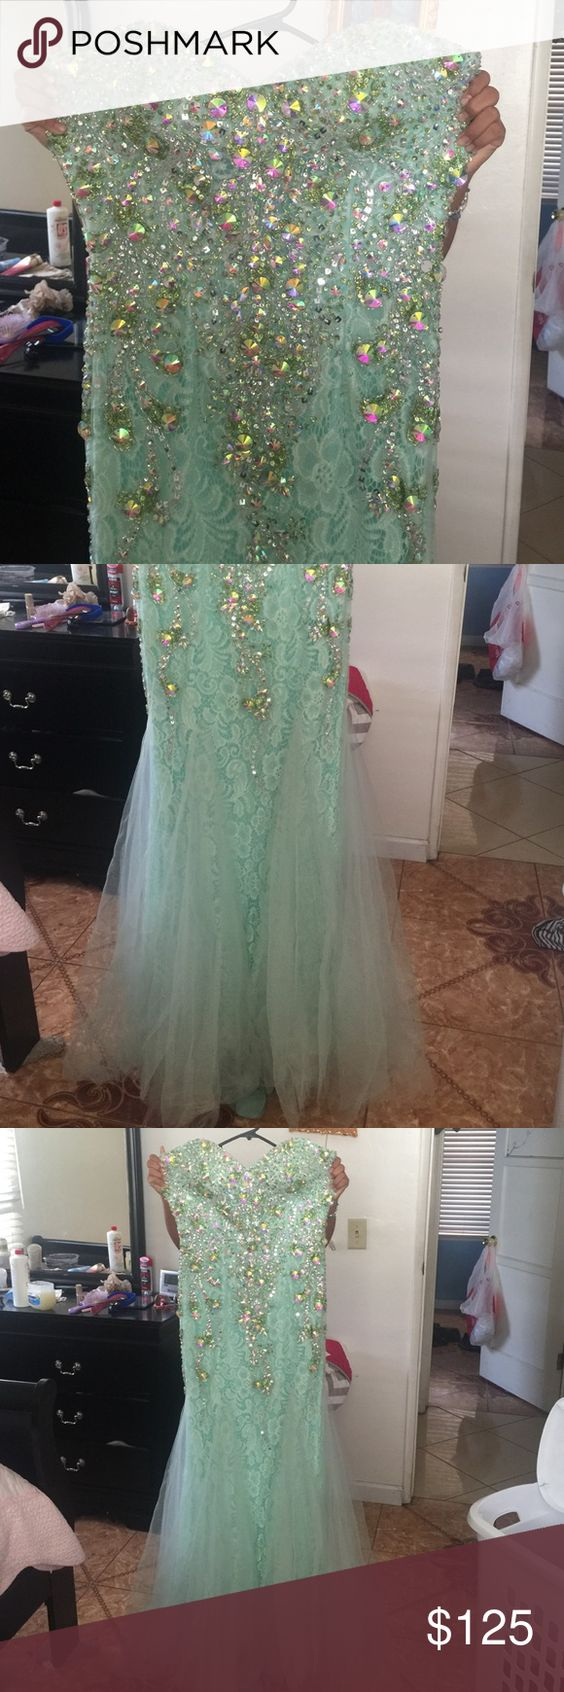 Mint green prom dress Worn once Cinderella divine Dresses Prom